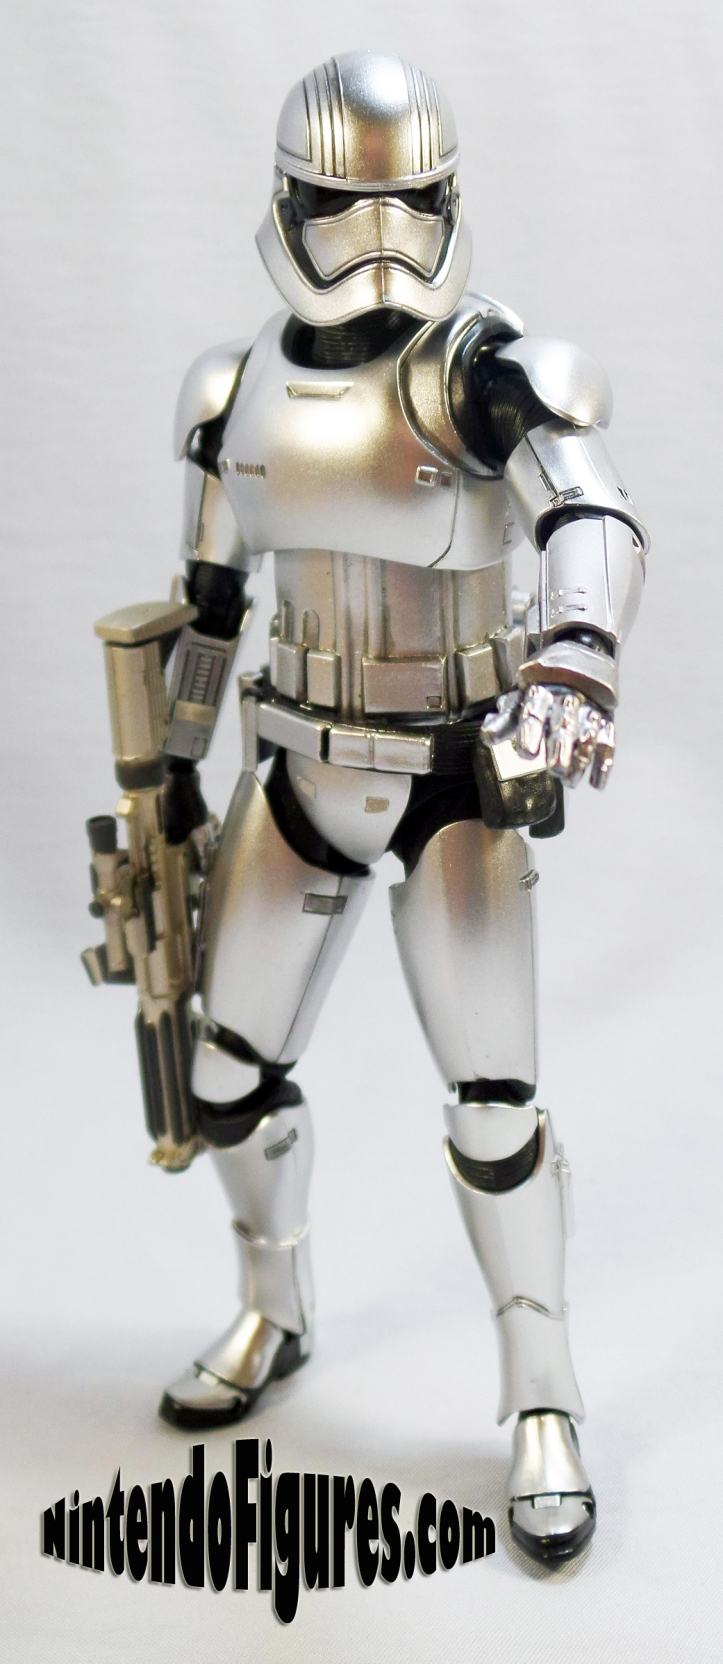 Captain Phasma Bandai S.H. Figuarts-without-cape-1